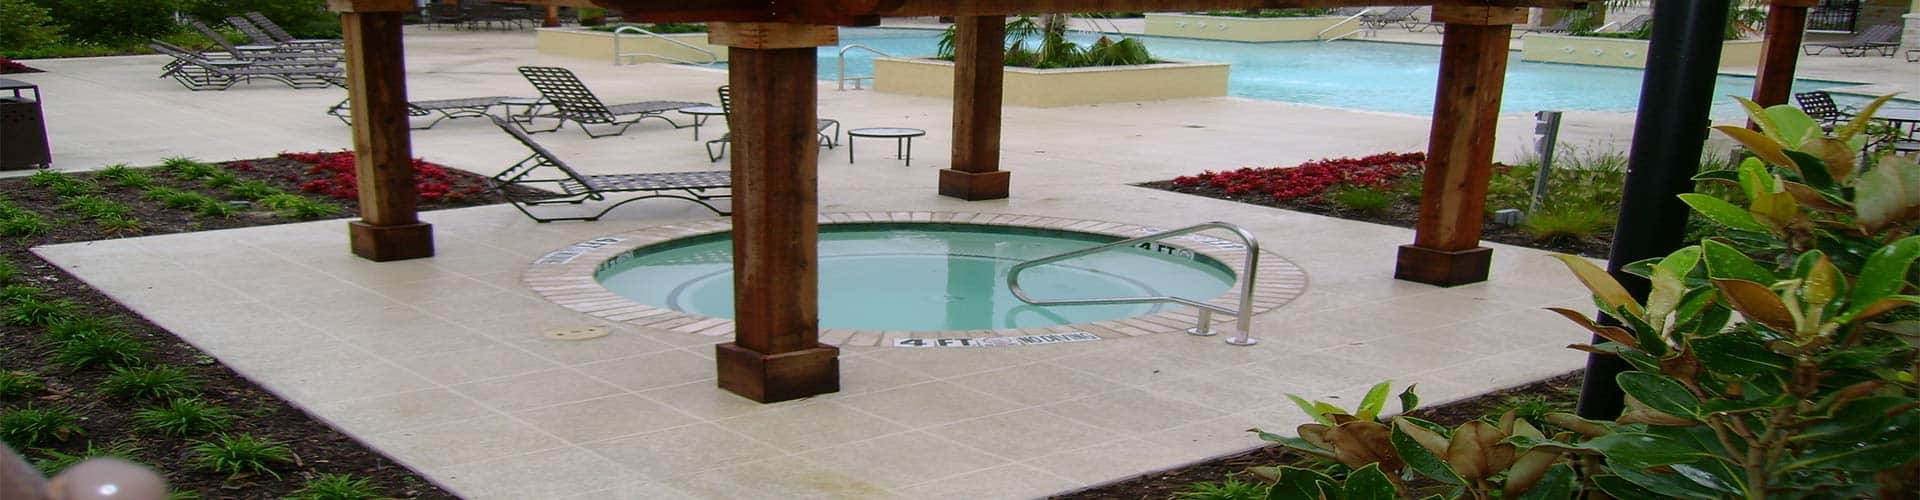 Commercial Pool Deck w/ Classic Texture